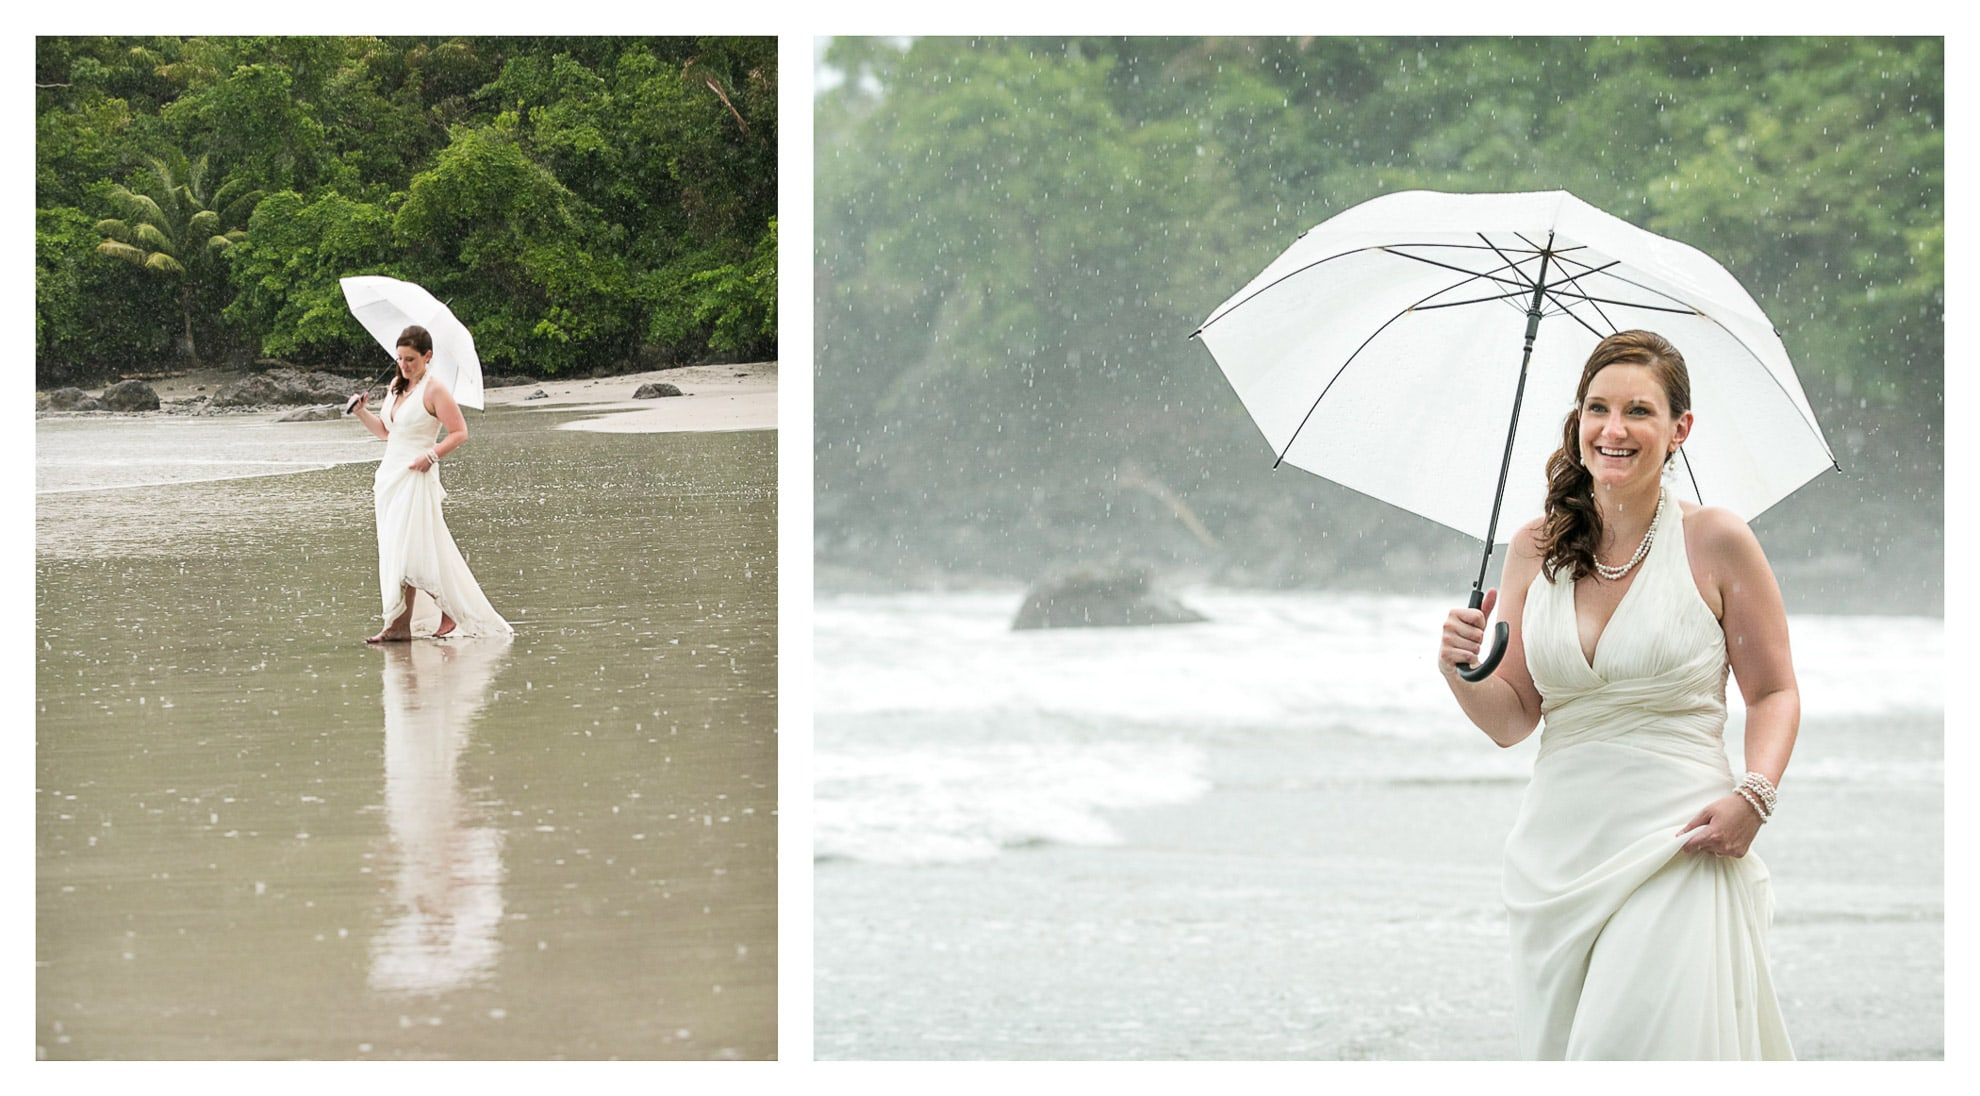 Even when it rains, Costa Rica is still the best place to elope!